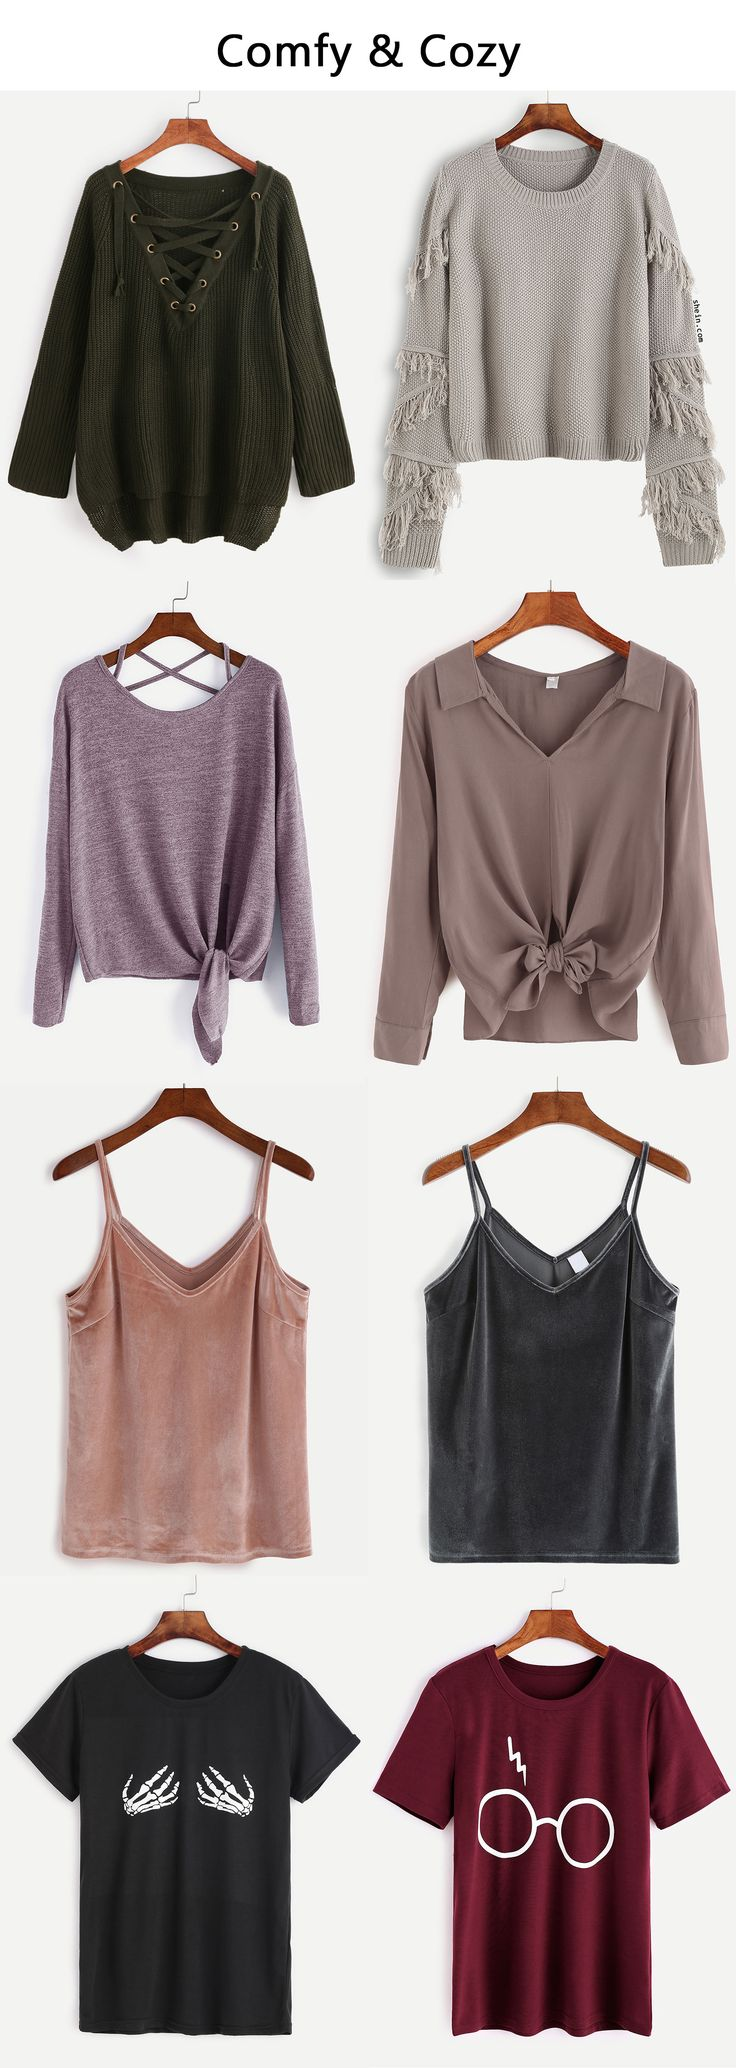 Comfy & cozy tops. Shop now!